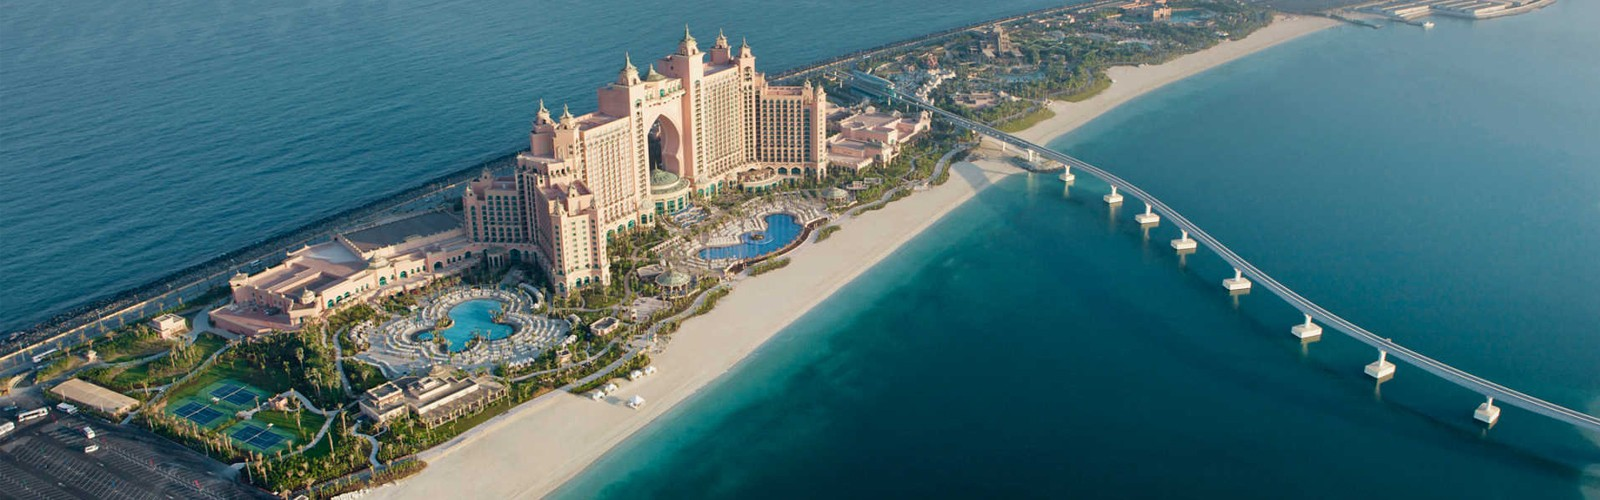 Best Family Hotels In Dubai Header